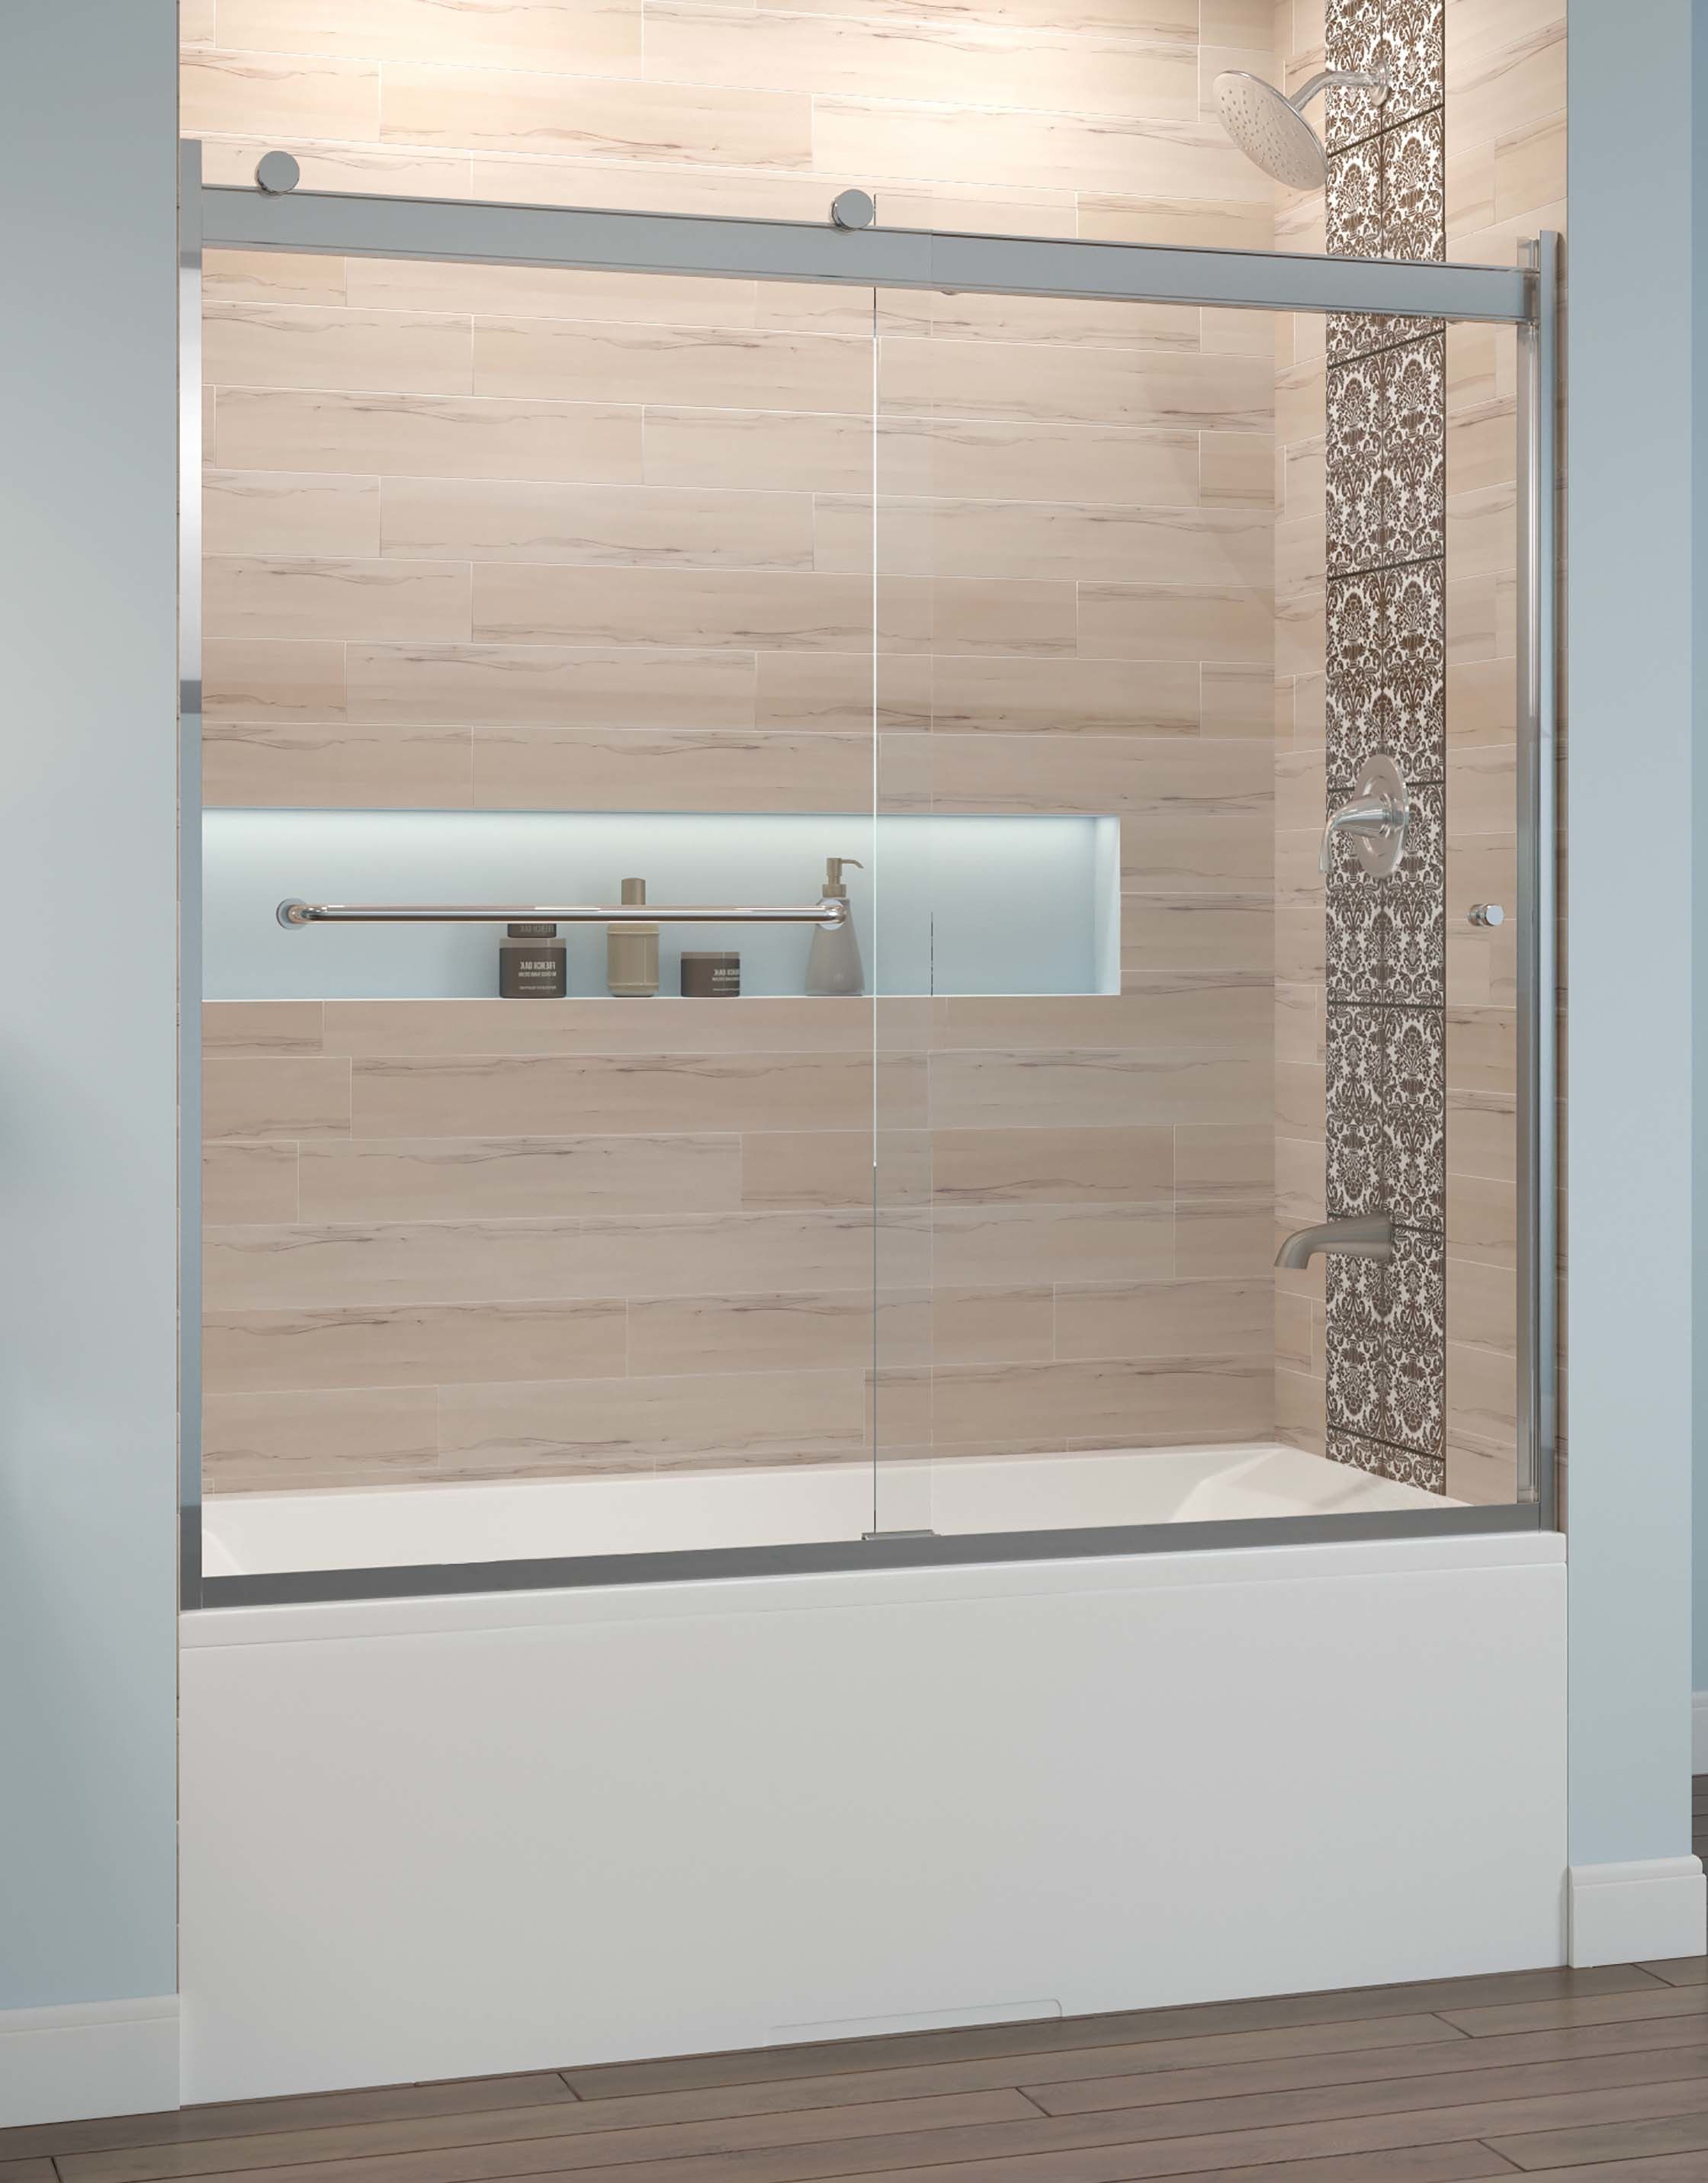 x pdx square dreamline prime improvement wayfair home sliding shower frameless doors reviews enclosure